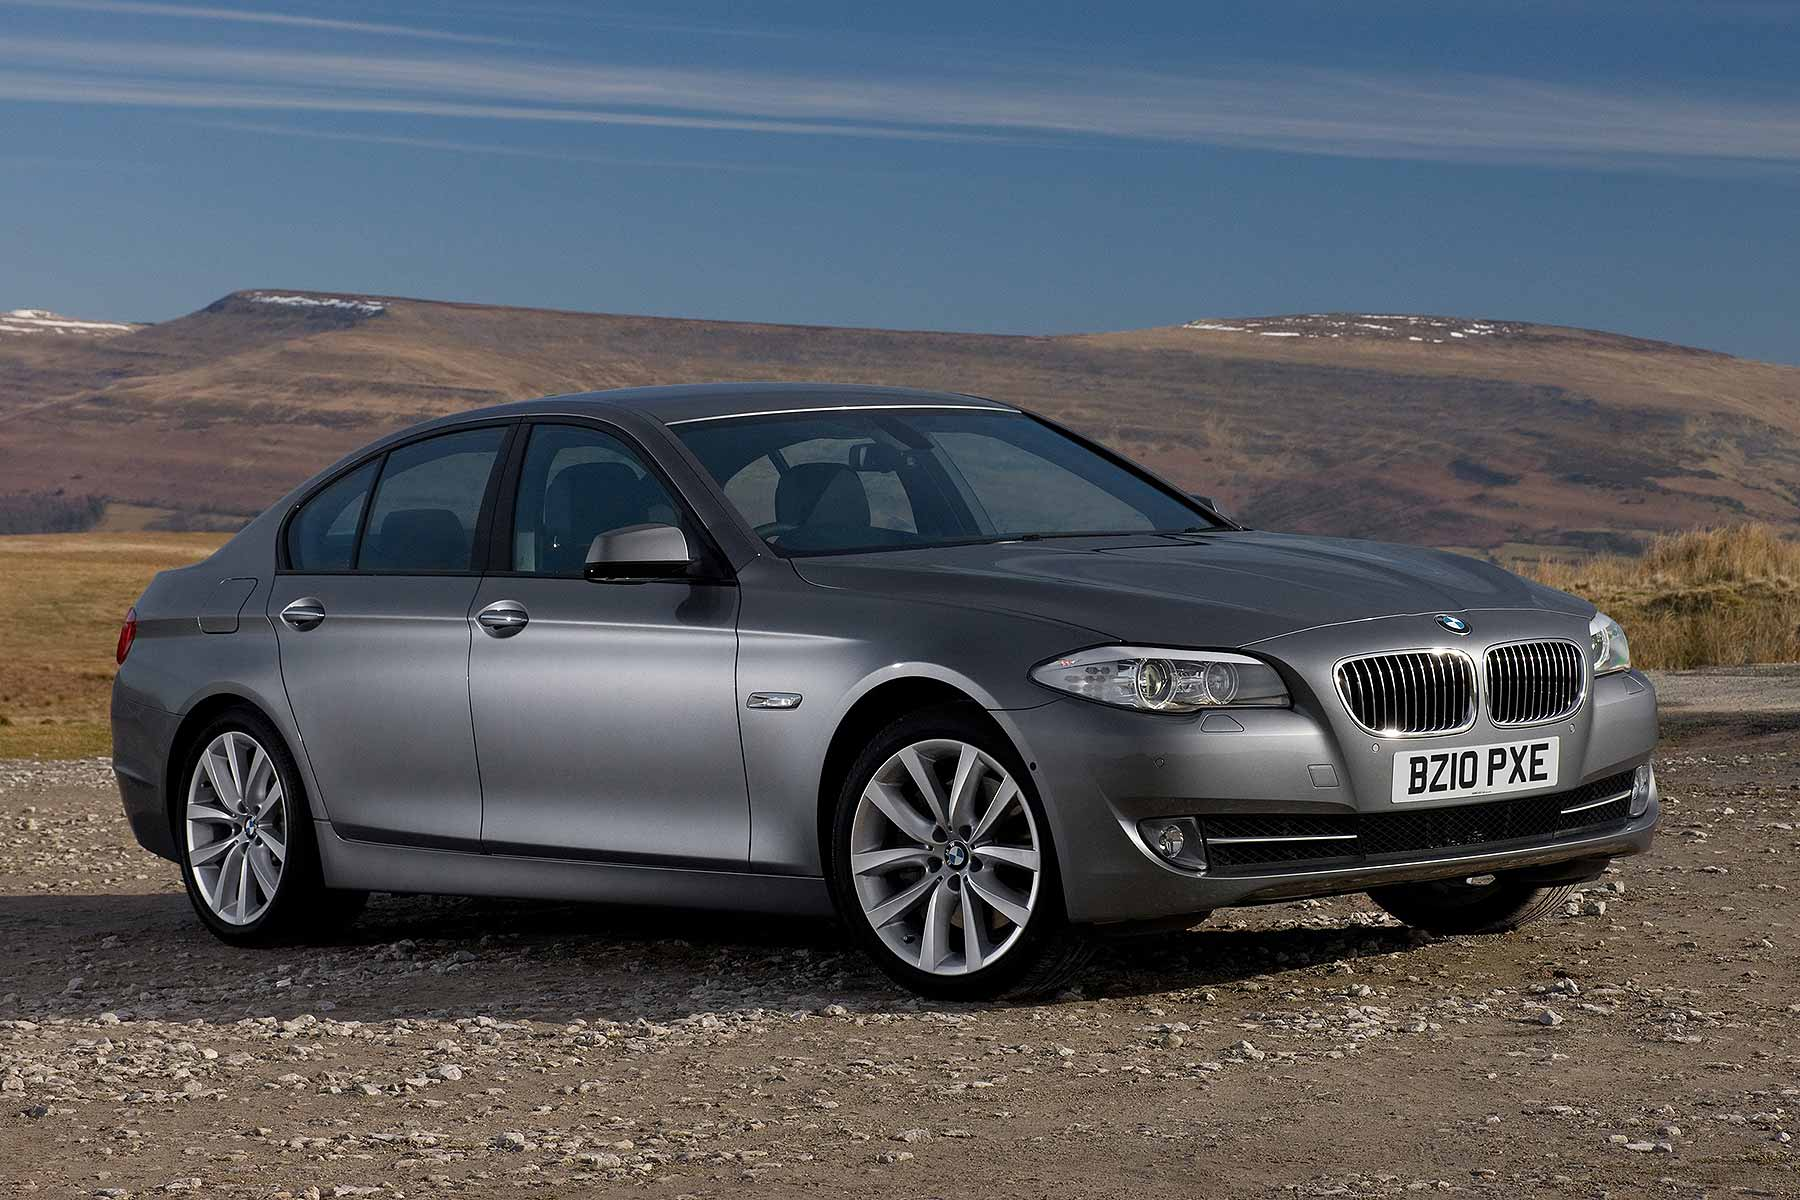 Bmw Expands Diesel Fire Recall To 1 6 Million Vehicles And 268 000 Are In The Uk Motoring